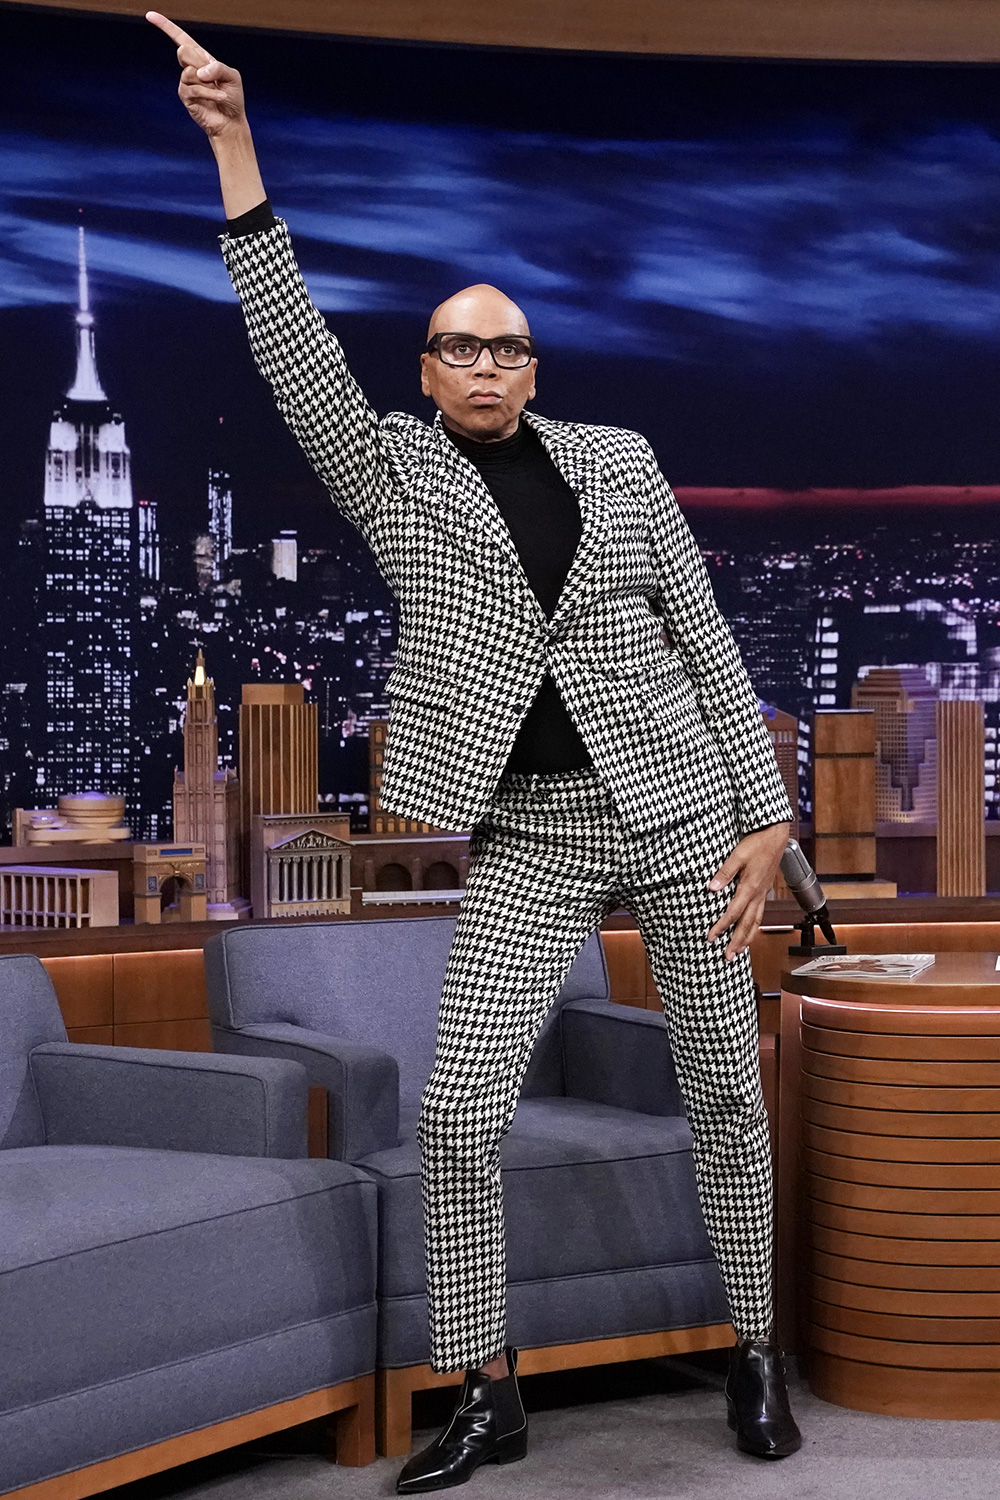 THE TONIGHT SHOW STARRING JIMMY FALLON -- Episode 1204 -- Pictured: Drag queen RuPaul during an interview on February 6, 2020